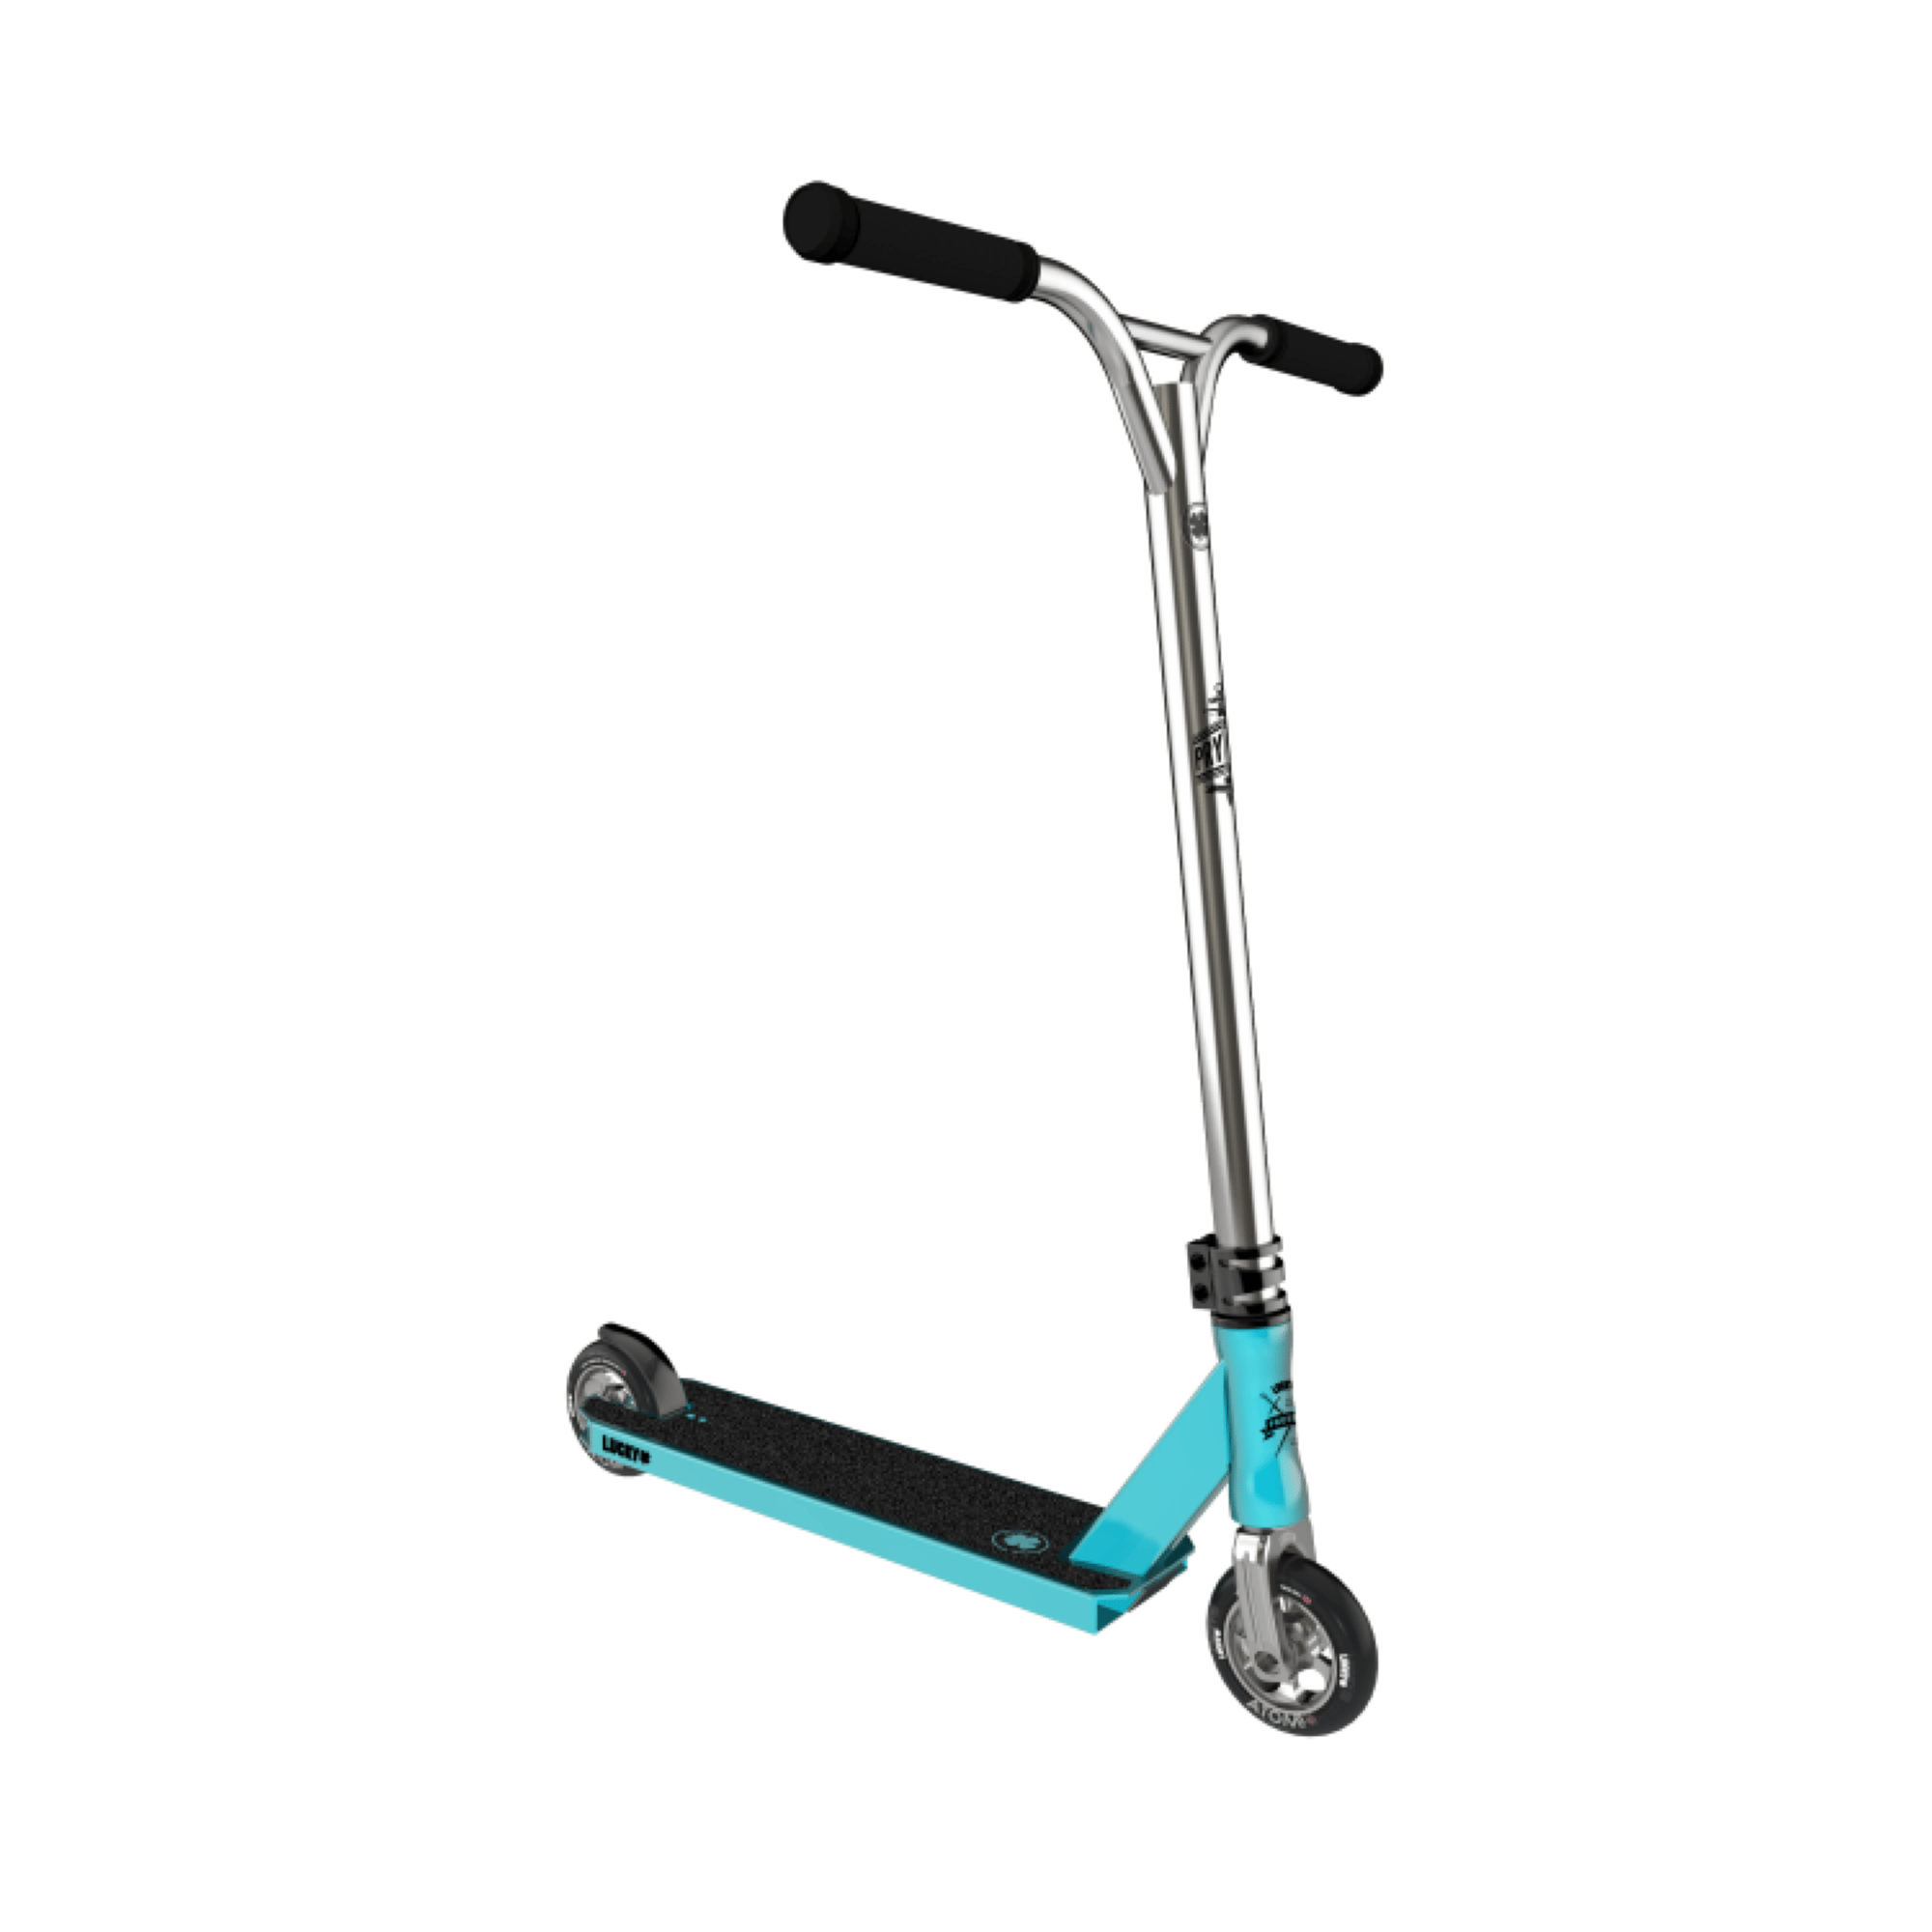 lucky prospect pro stunt scooter teal. Black Bedroom Furniture Sets. Home Design Ideas